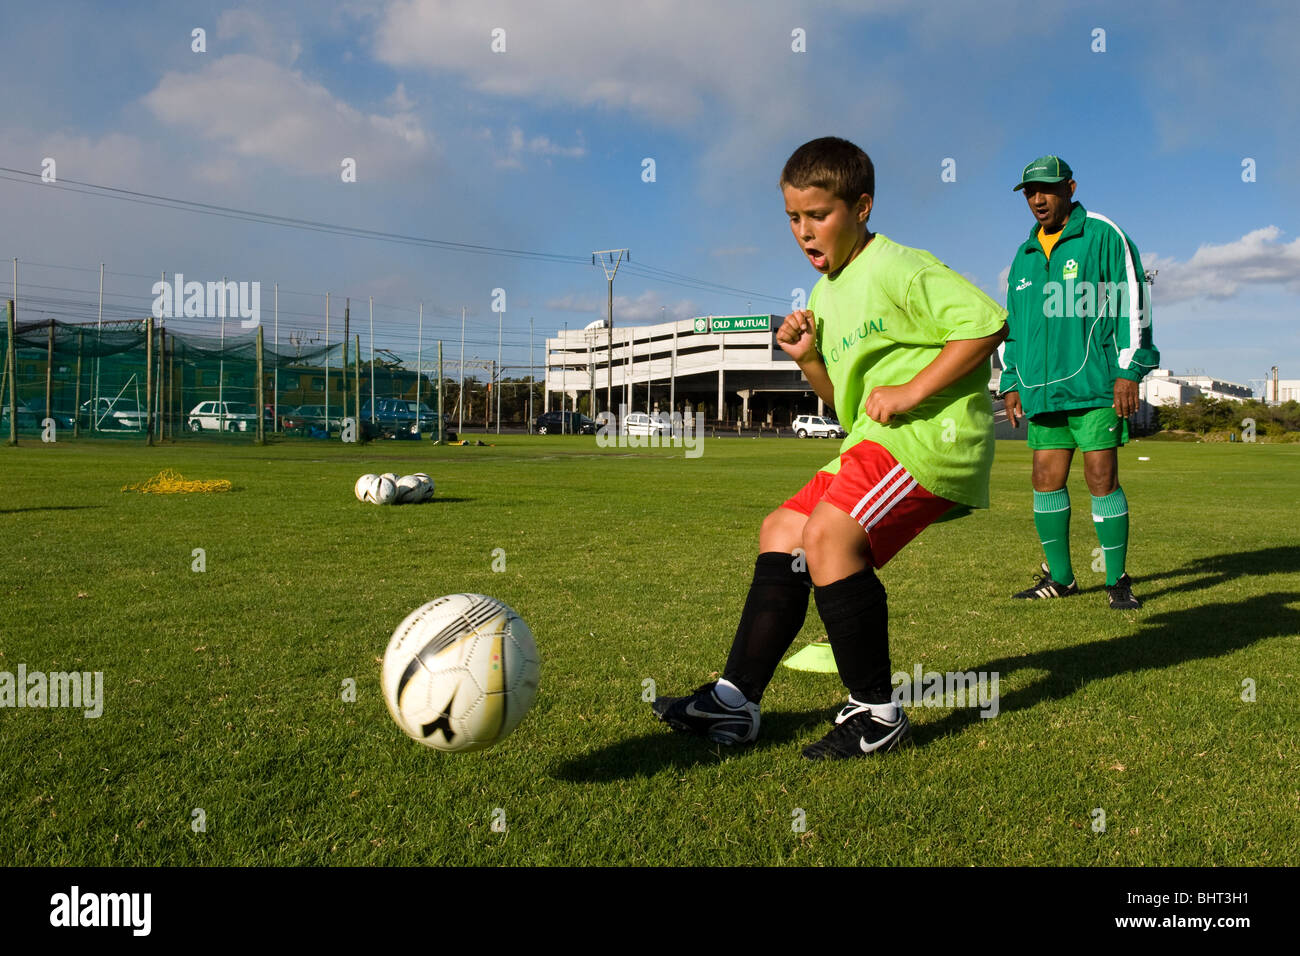 Coach watching player at Old Mutual Football Academy, Cape Town, South Africa - Stock Image